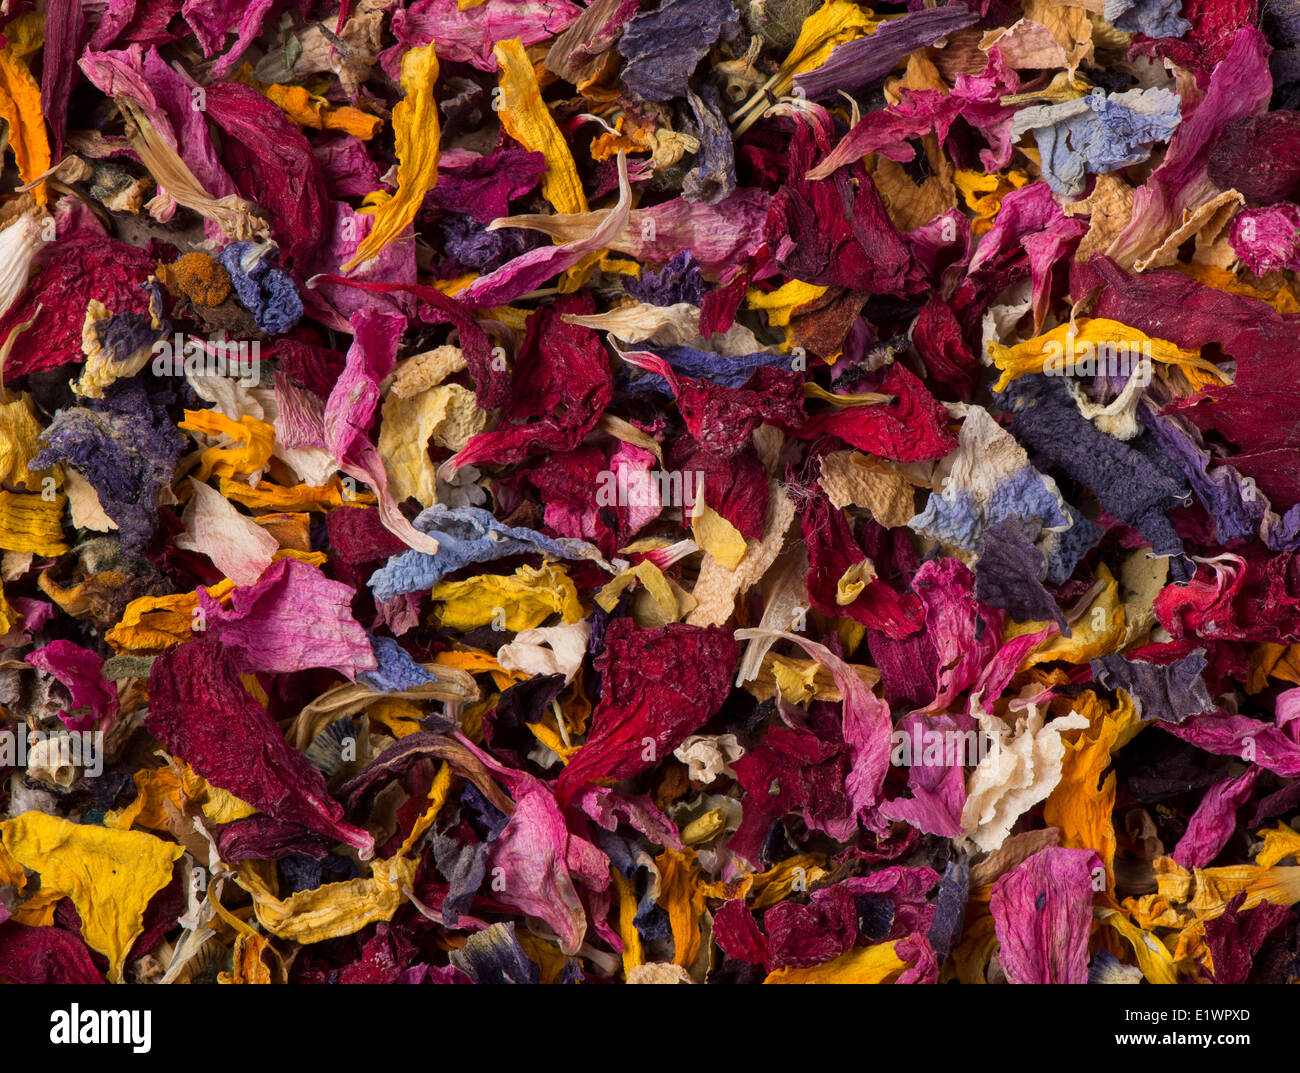 Dried Flower Petals - Stock Image